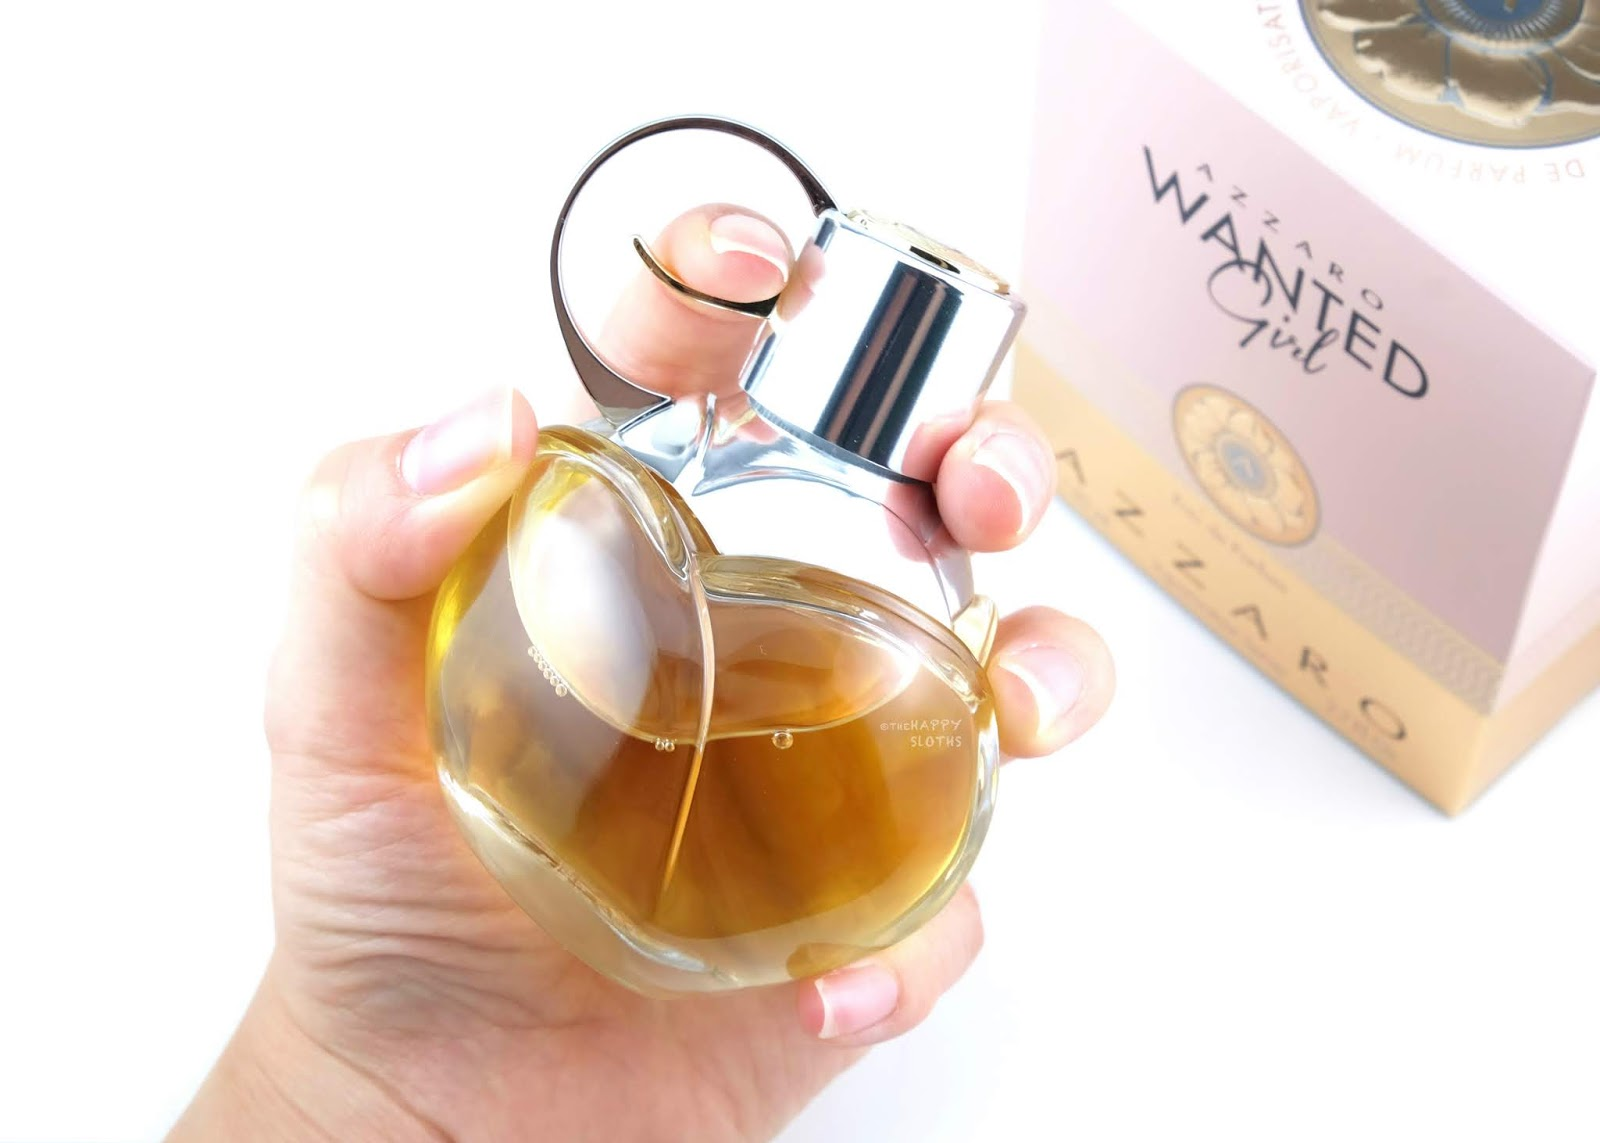 Azzaro | Wanted Girl Eau de Parfum: Review | The Happy Sloths: Beauty,  Makeup, and Skincare Blog with Reviews and Swatches